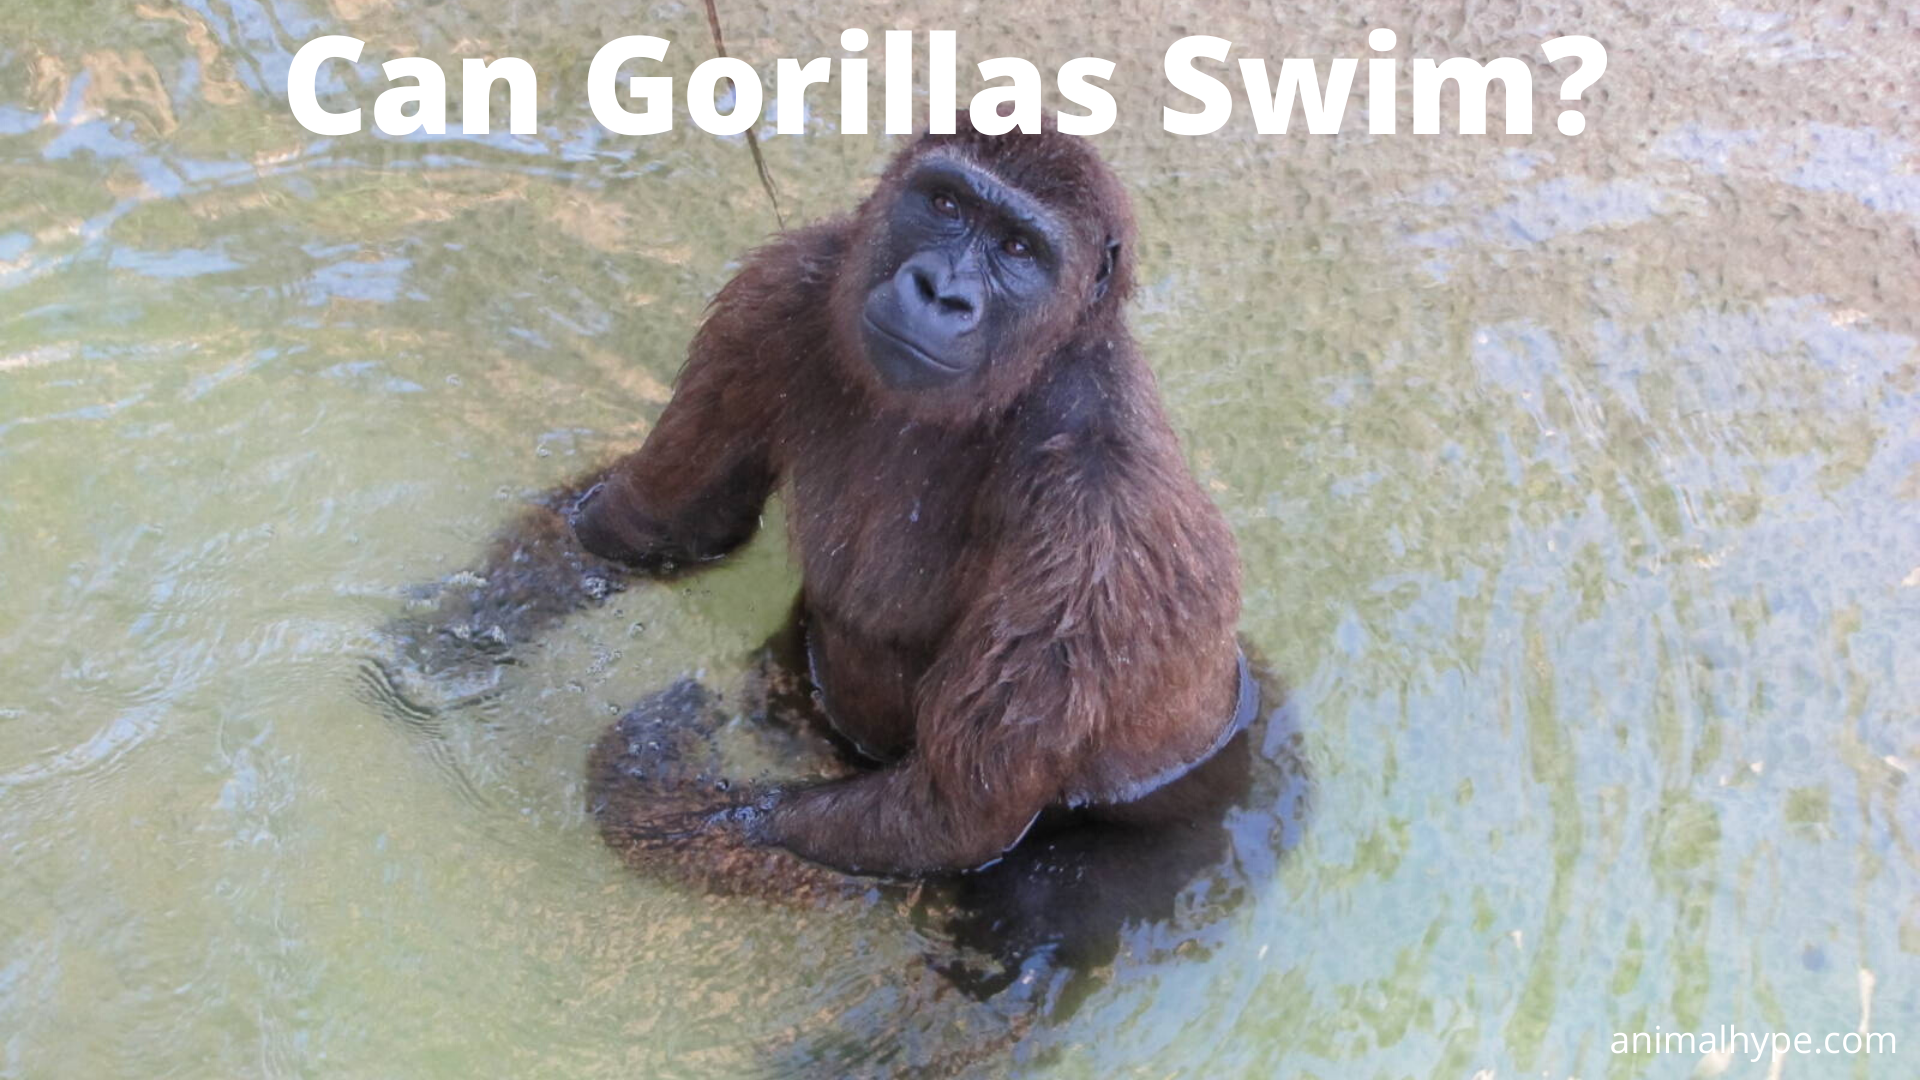 Can Gorillas Swim